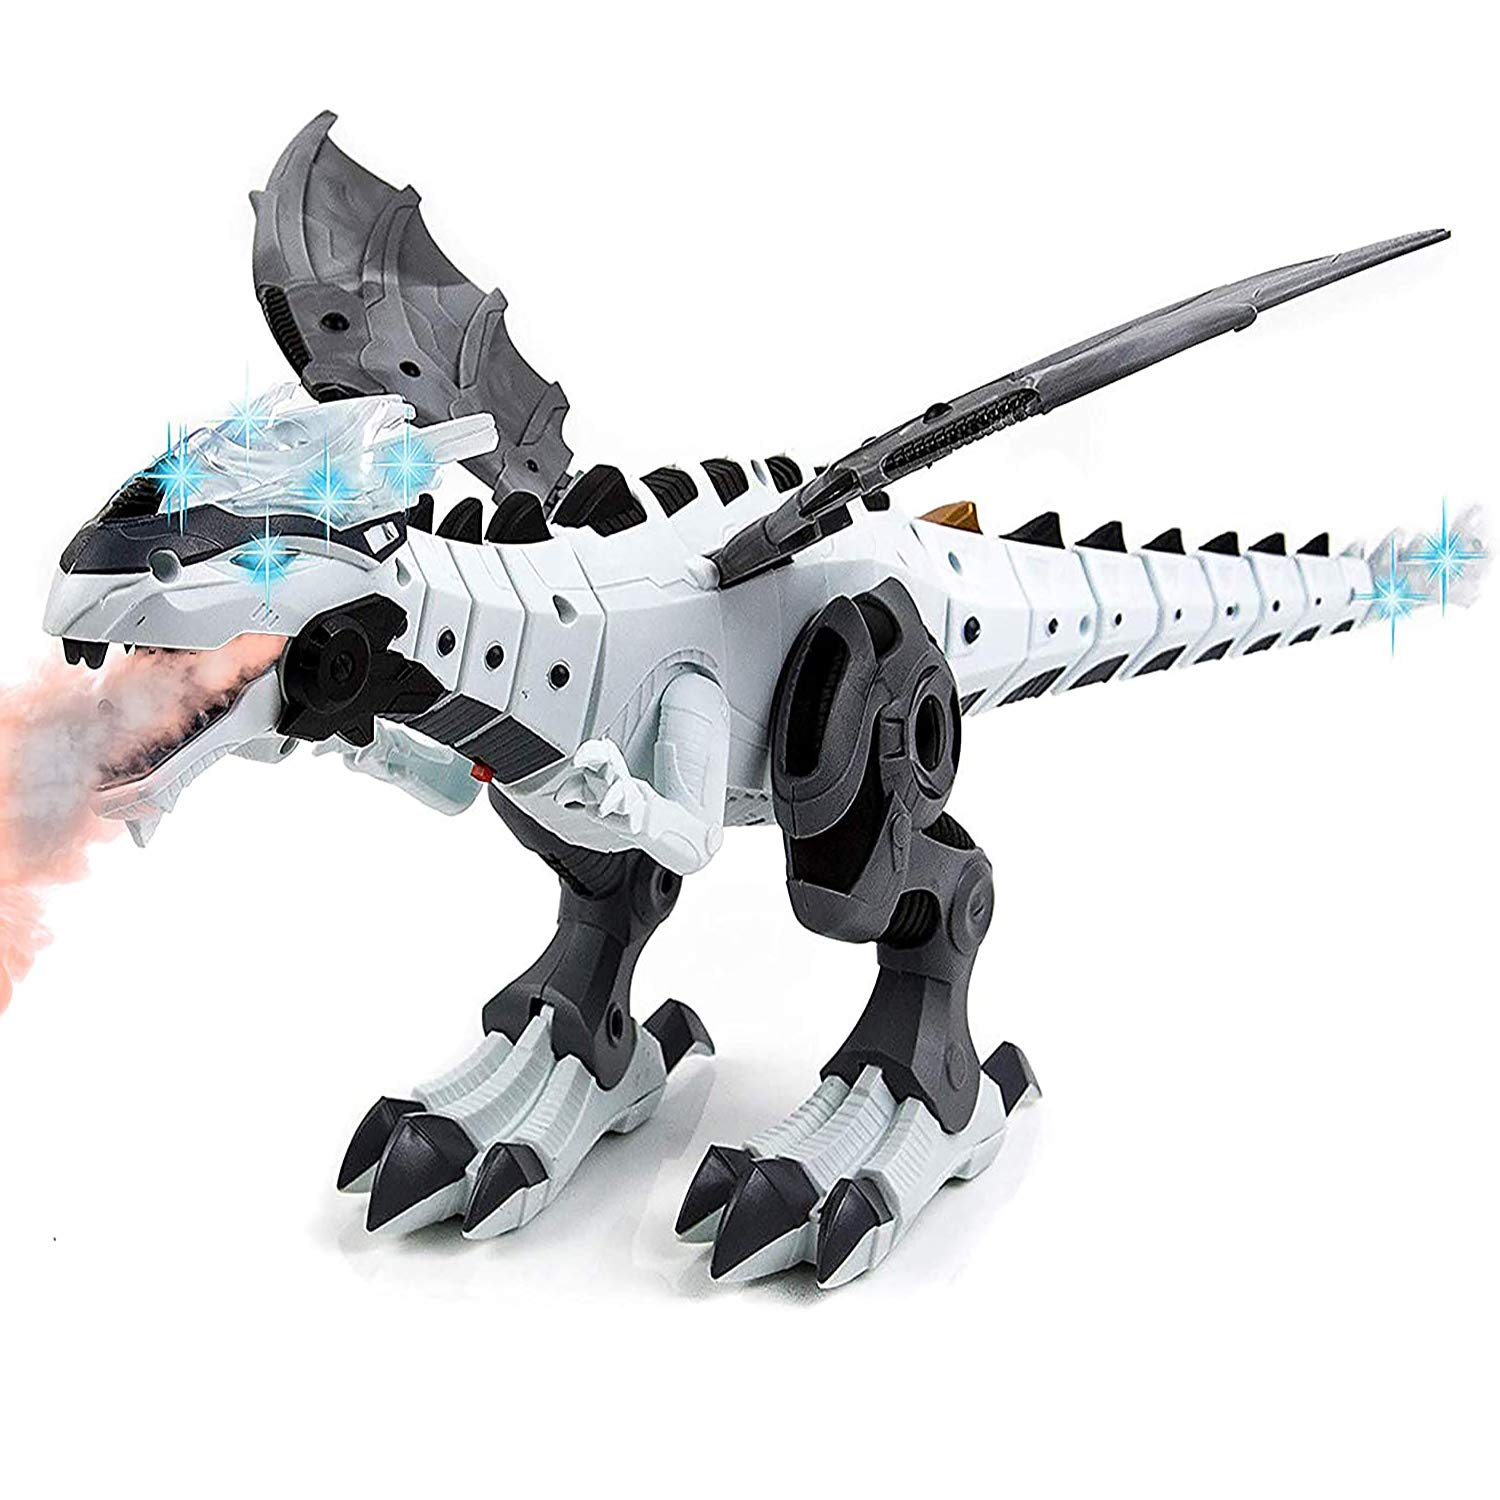 Toysery Walking Dinosaur Robot Toy for Kids - Mist Spray Dinosaur Toy Fire Breathing Water Spray Mist with Red Light & Realistic Sounds, Boys & Girls 3 -12 Years Old (Colors May Vary)